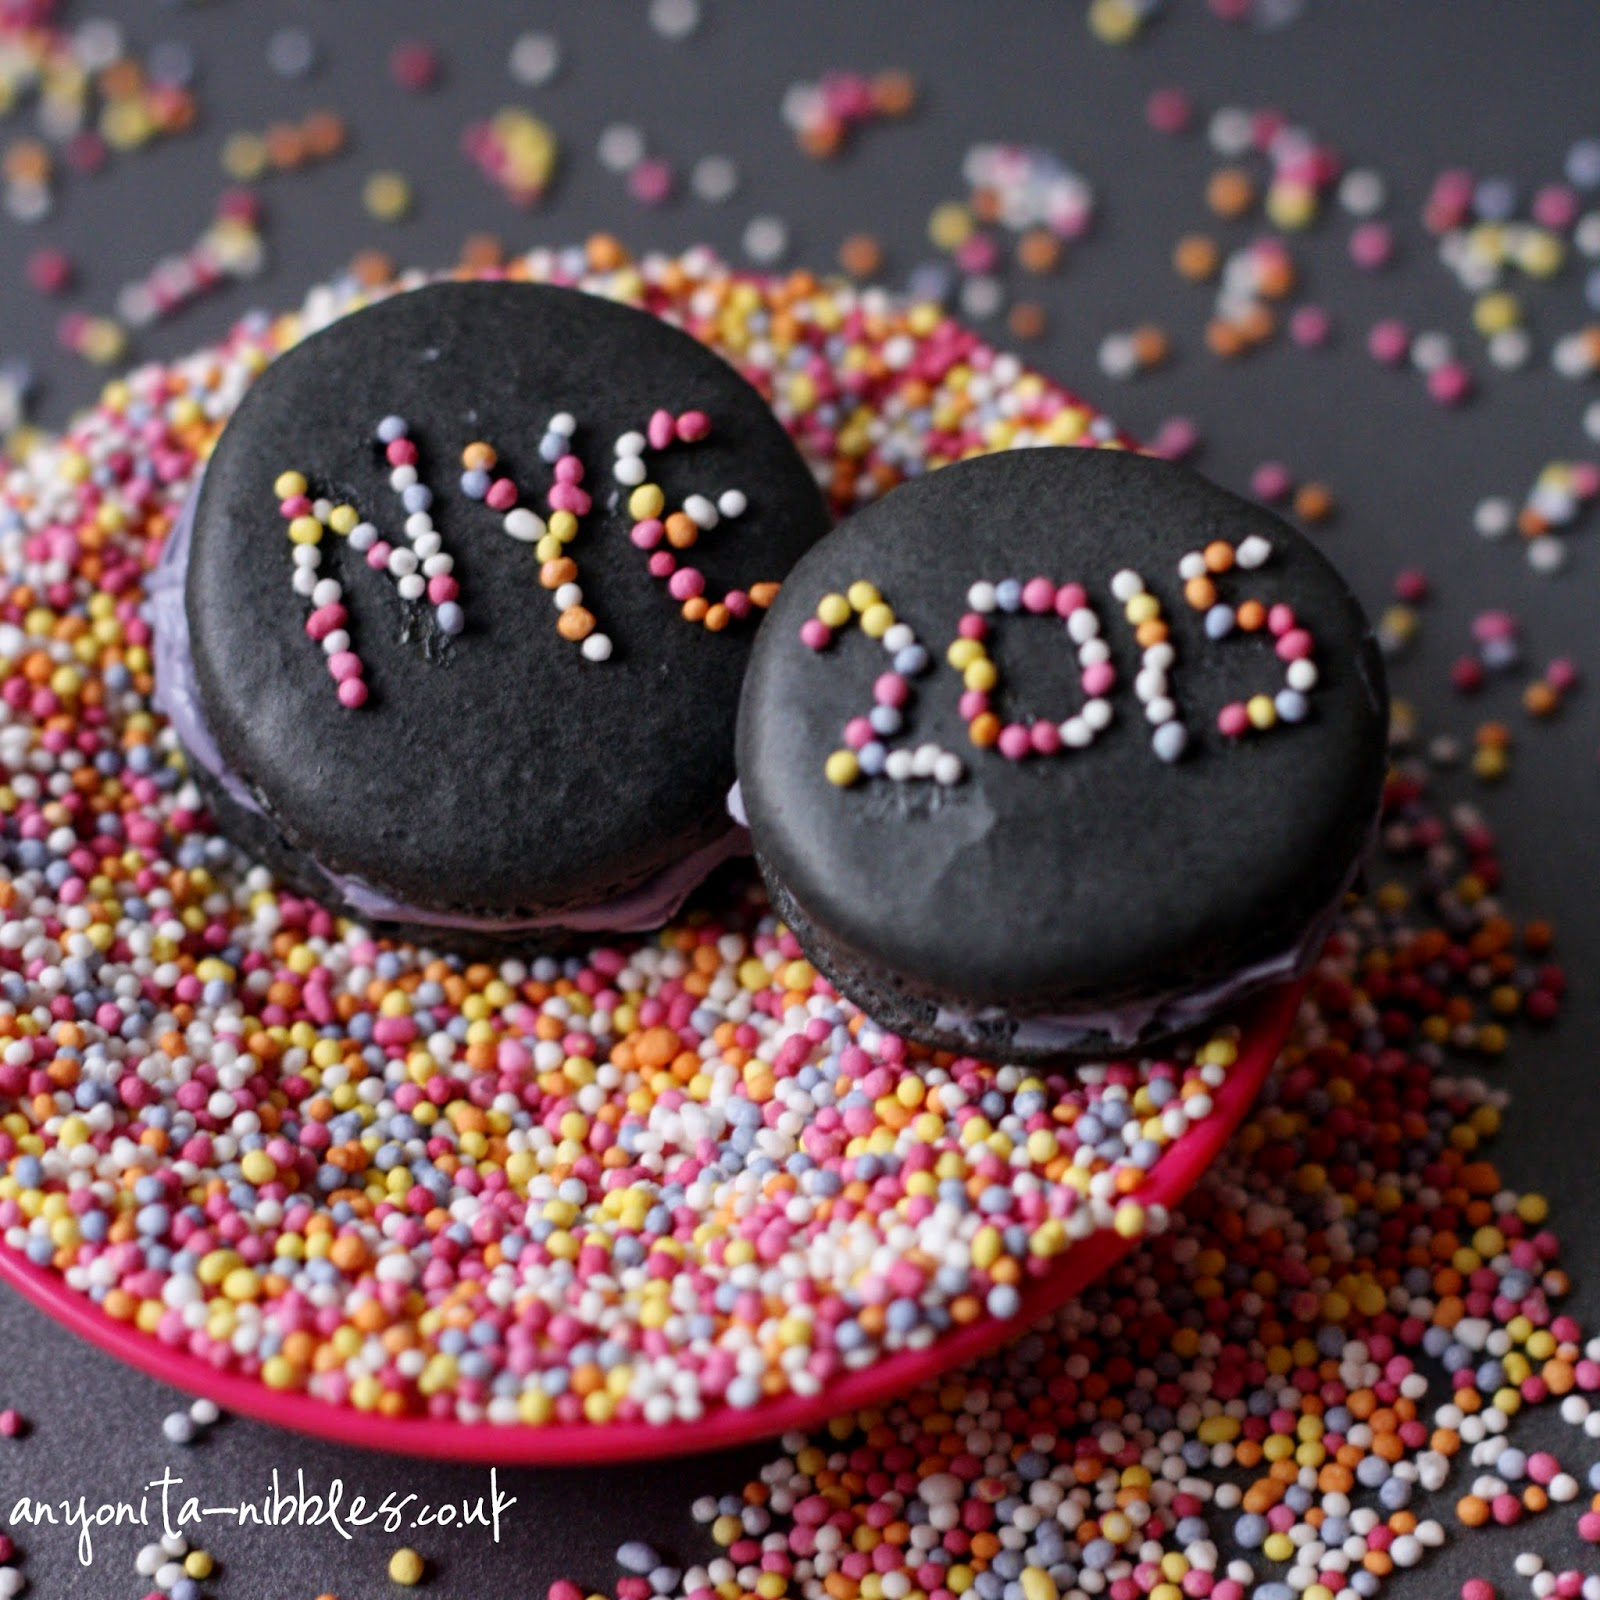 NYE 2015 Macarons from Anyonita-nibbles.co.uk